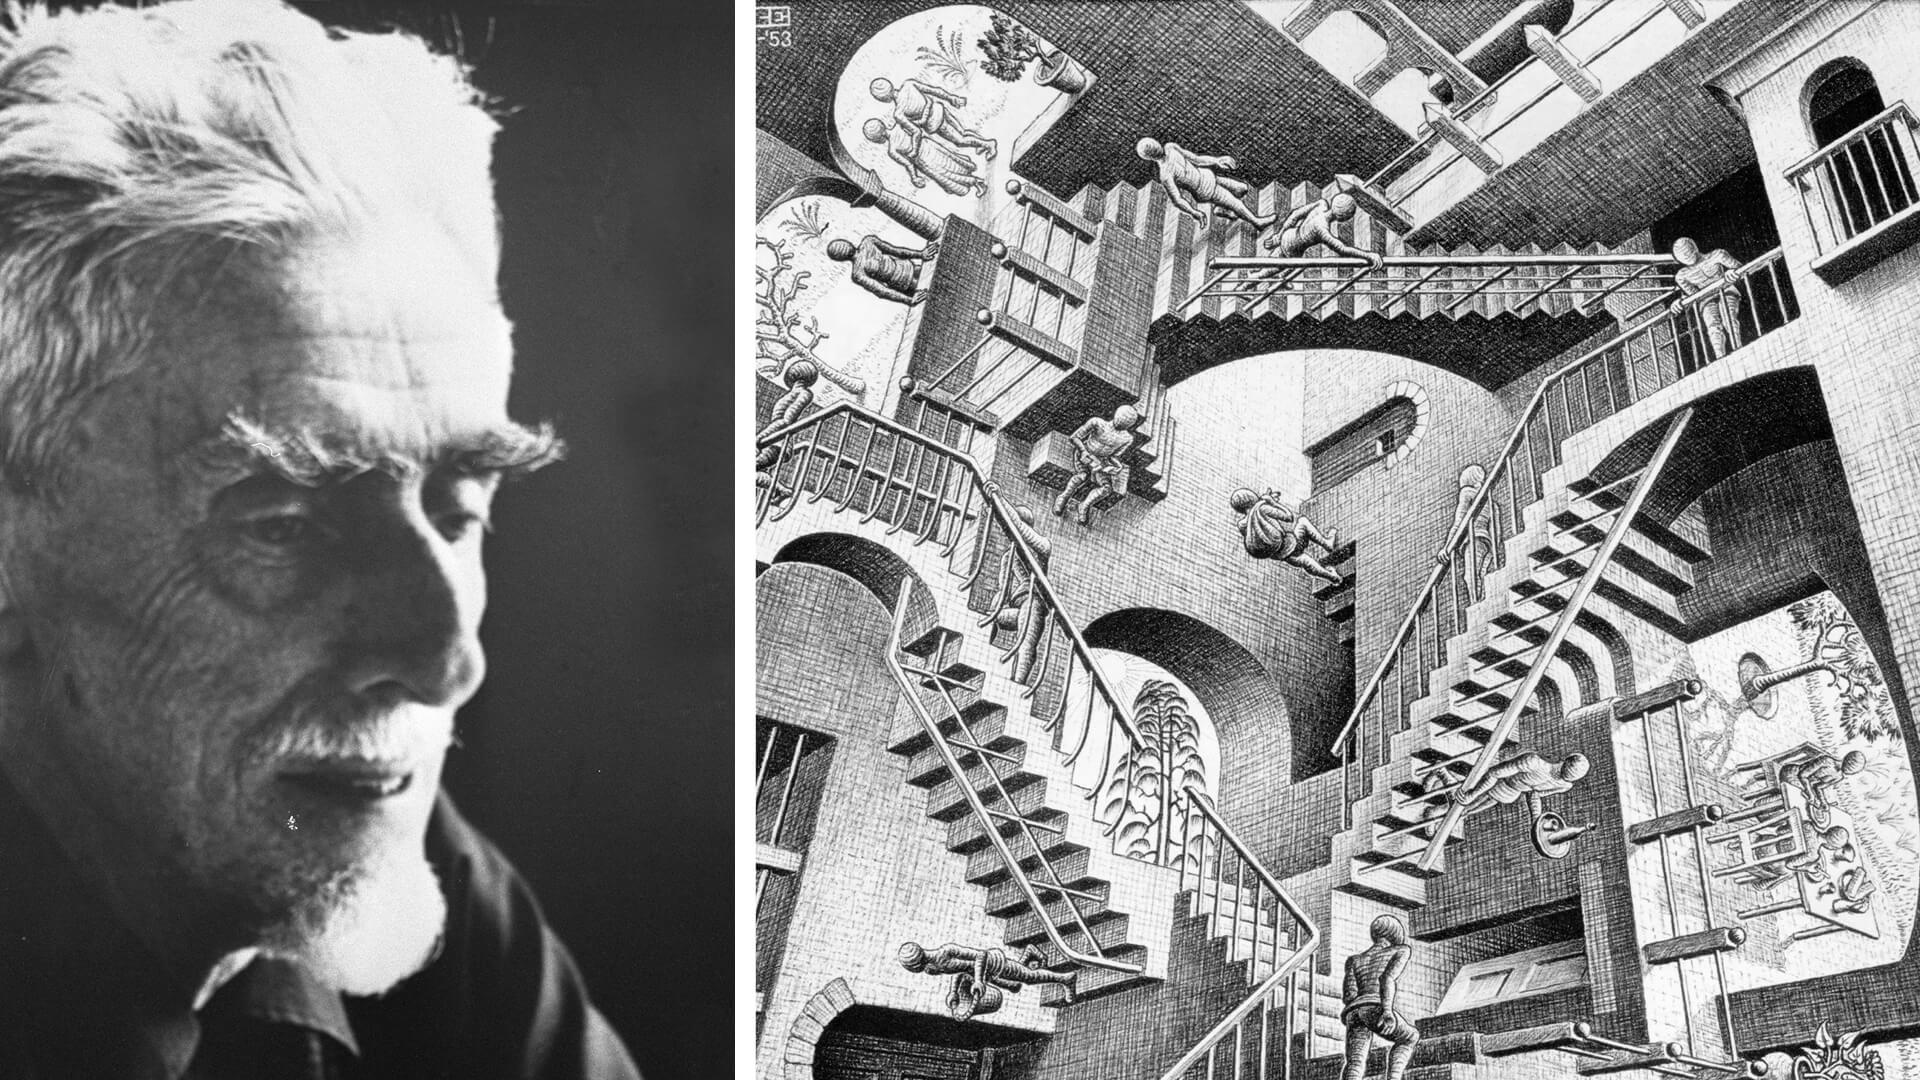 MC Escher, and (R): Escher's 'Relativity' lithograph, 1953 | Maurits Cornelis Escher | STIRworld